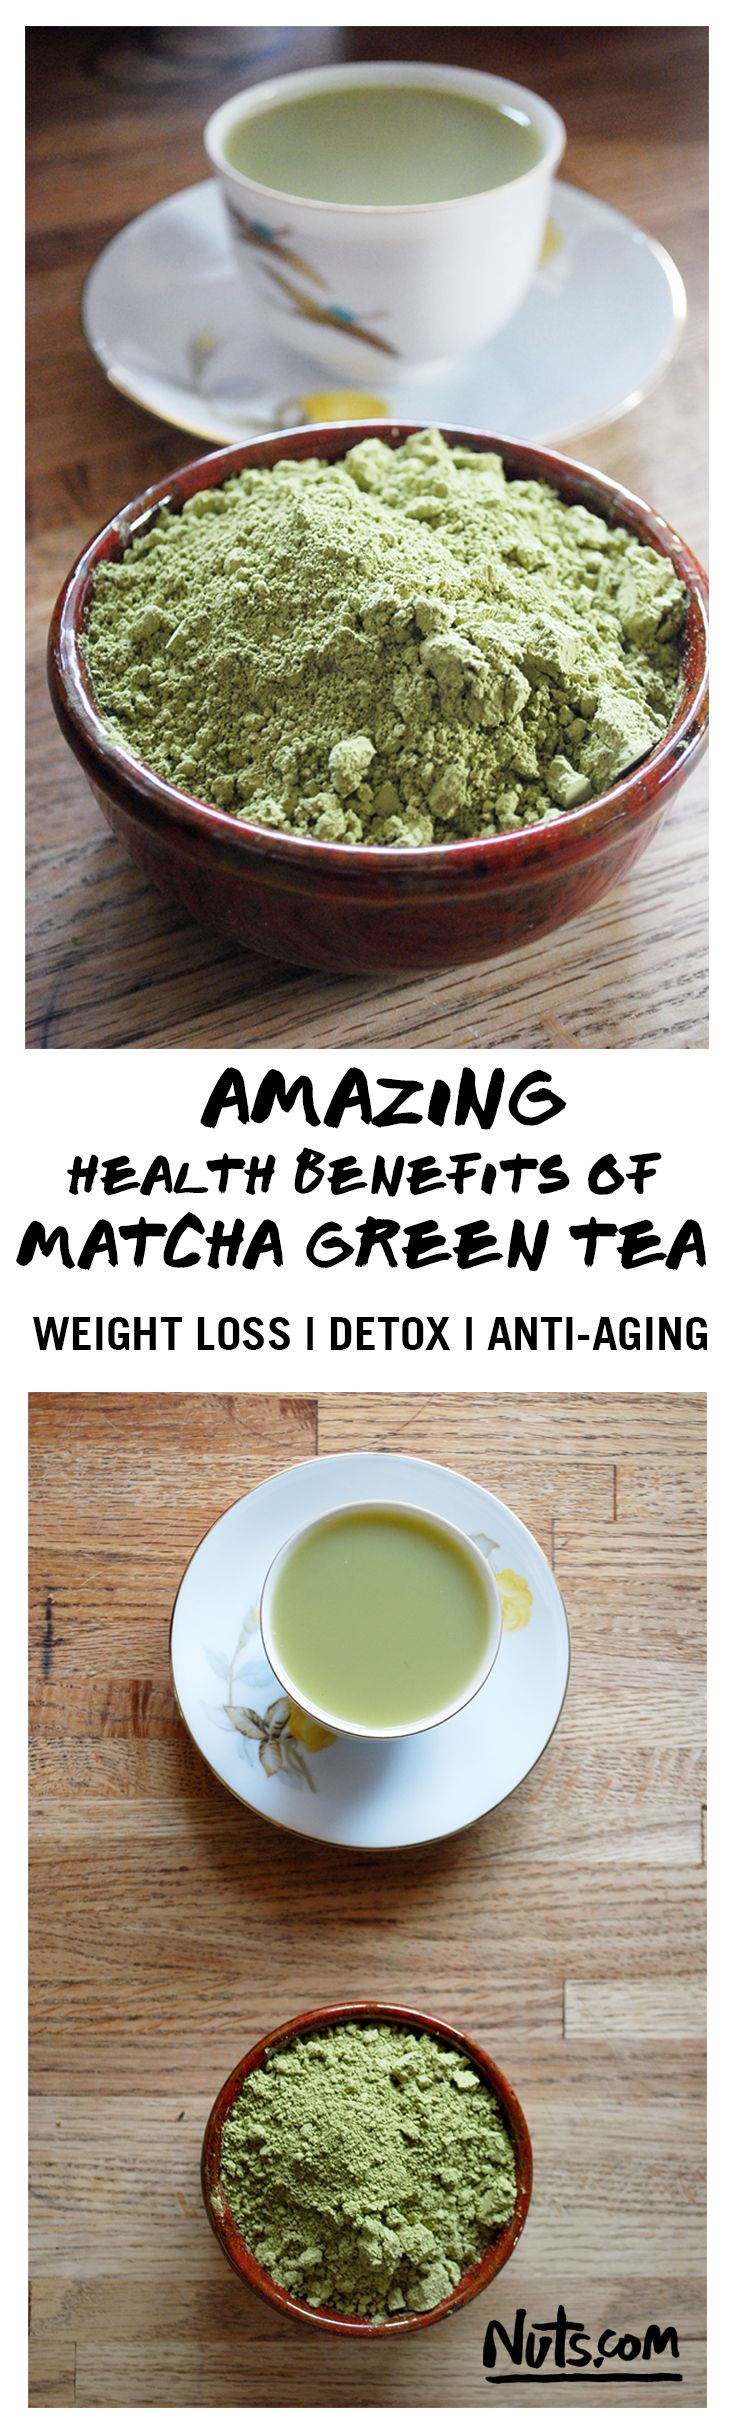 Amazing Health Benefits of Matcha Gree Tea | Imported from Japan, Matcha Green Tea is a high quality green tea powder with a heaping helping of health benefits. From anti-aging properties to weight loss and immunity boosting antioxidants, Matcha should definitely be in your life. You can even make delicious Matcha recipes including pancakes, lattes, and cookies! Find out more at Nuts.com!